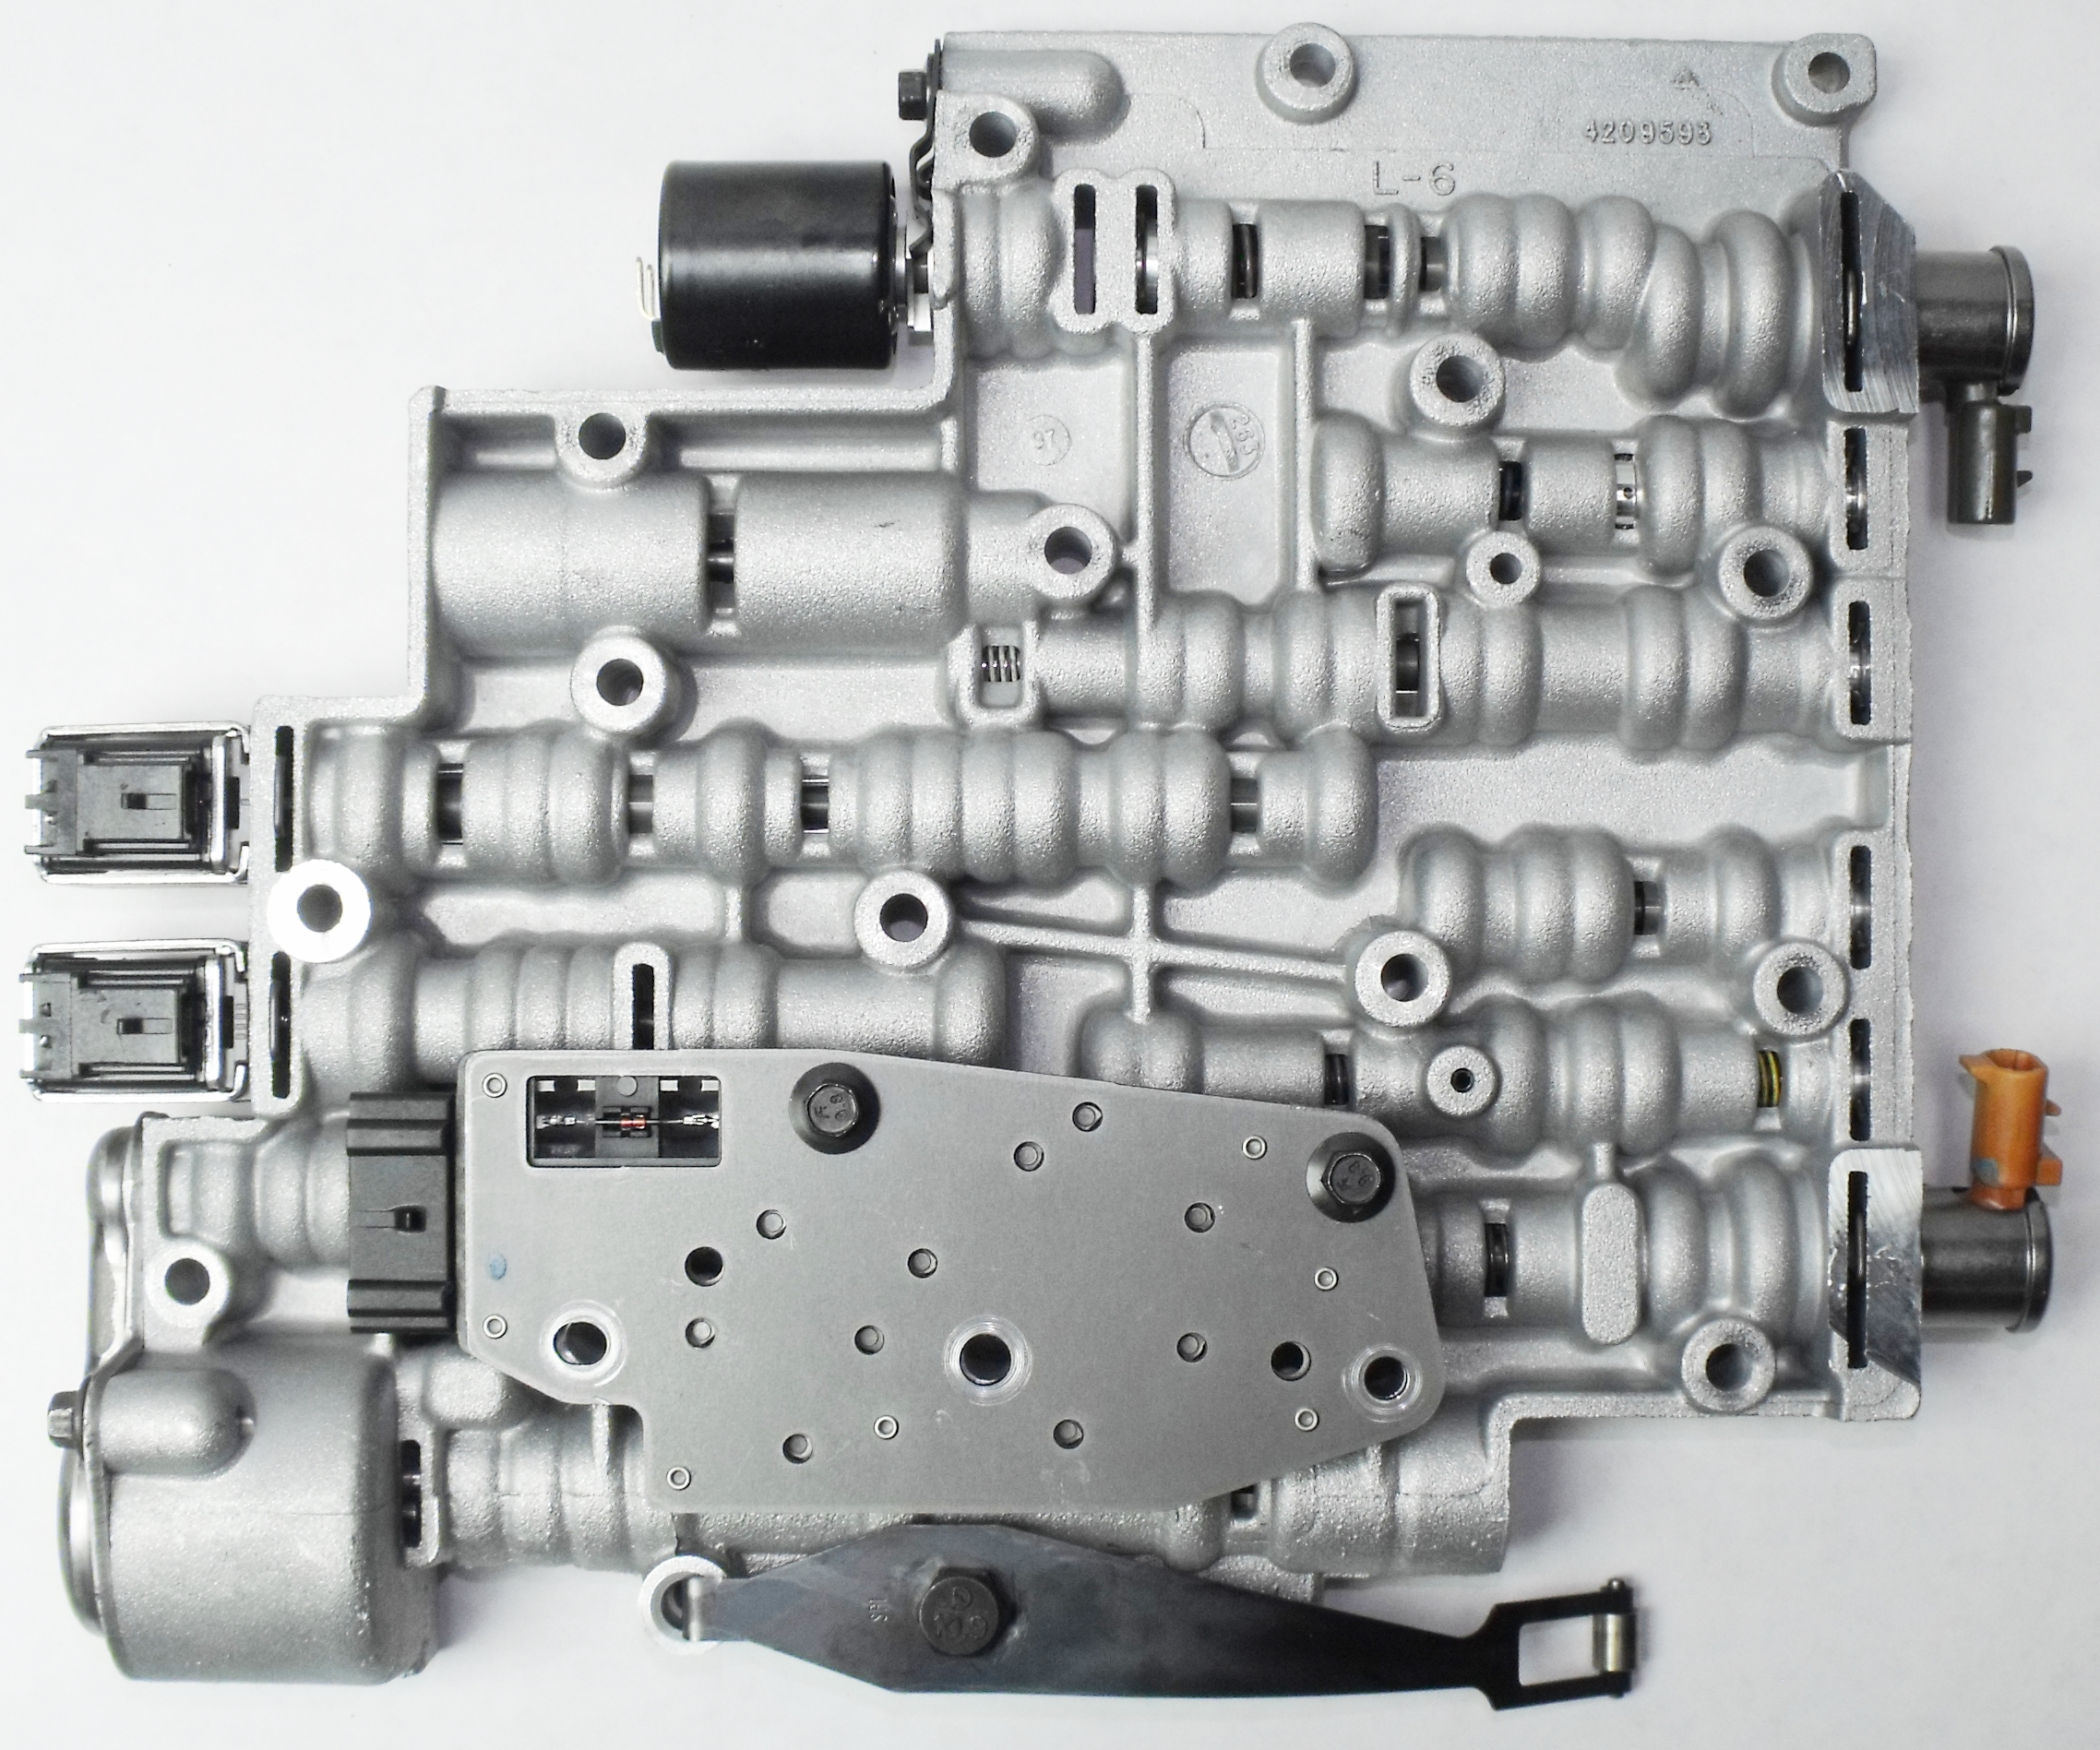 1242s a?t=1434903125 remanufactured gm 700r4 4l60e 4l65e transmission valve bodies 700r4 transmission diagrams at n-0.co